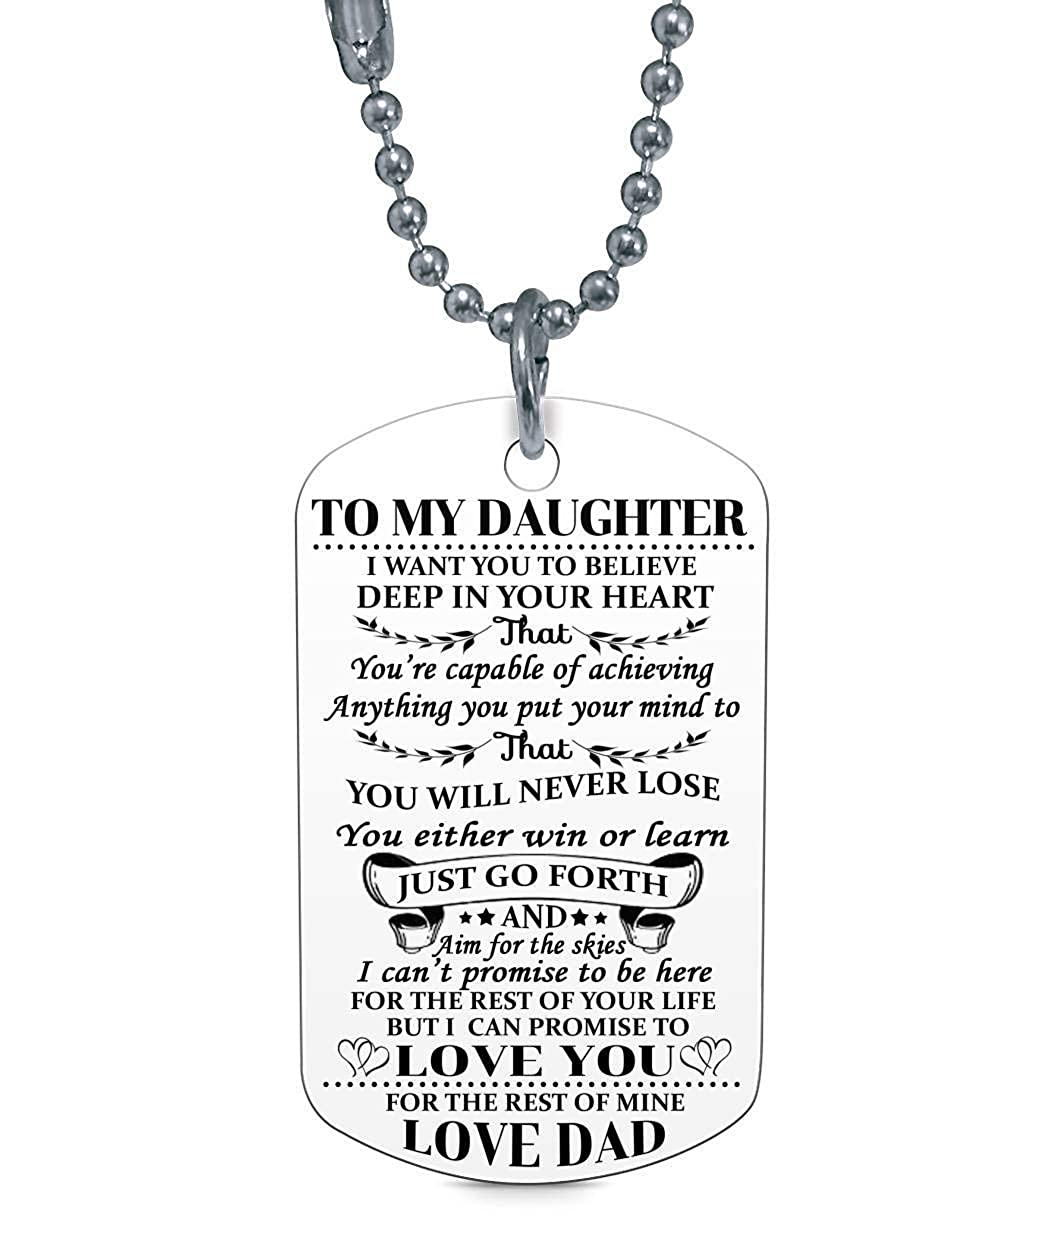 To My Daughter I Want You Believe Love Dad Dog Tag Military Air Force Navy Coast Guard Necklace Ball Chain Gift For Best Birthday Graduation